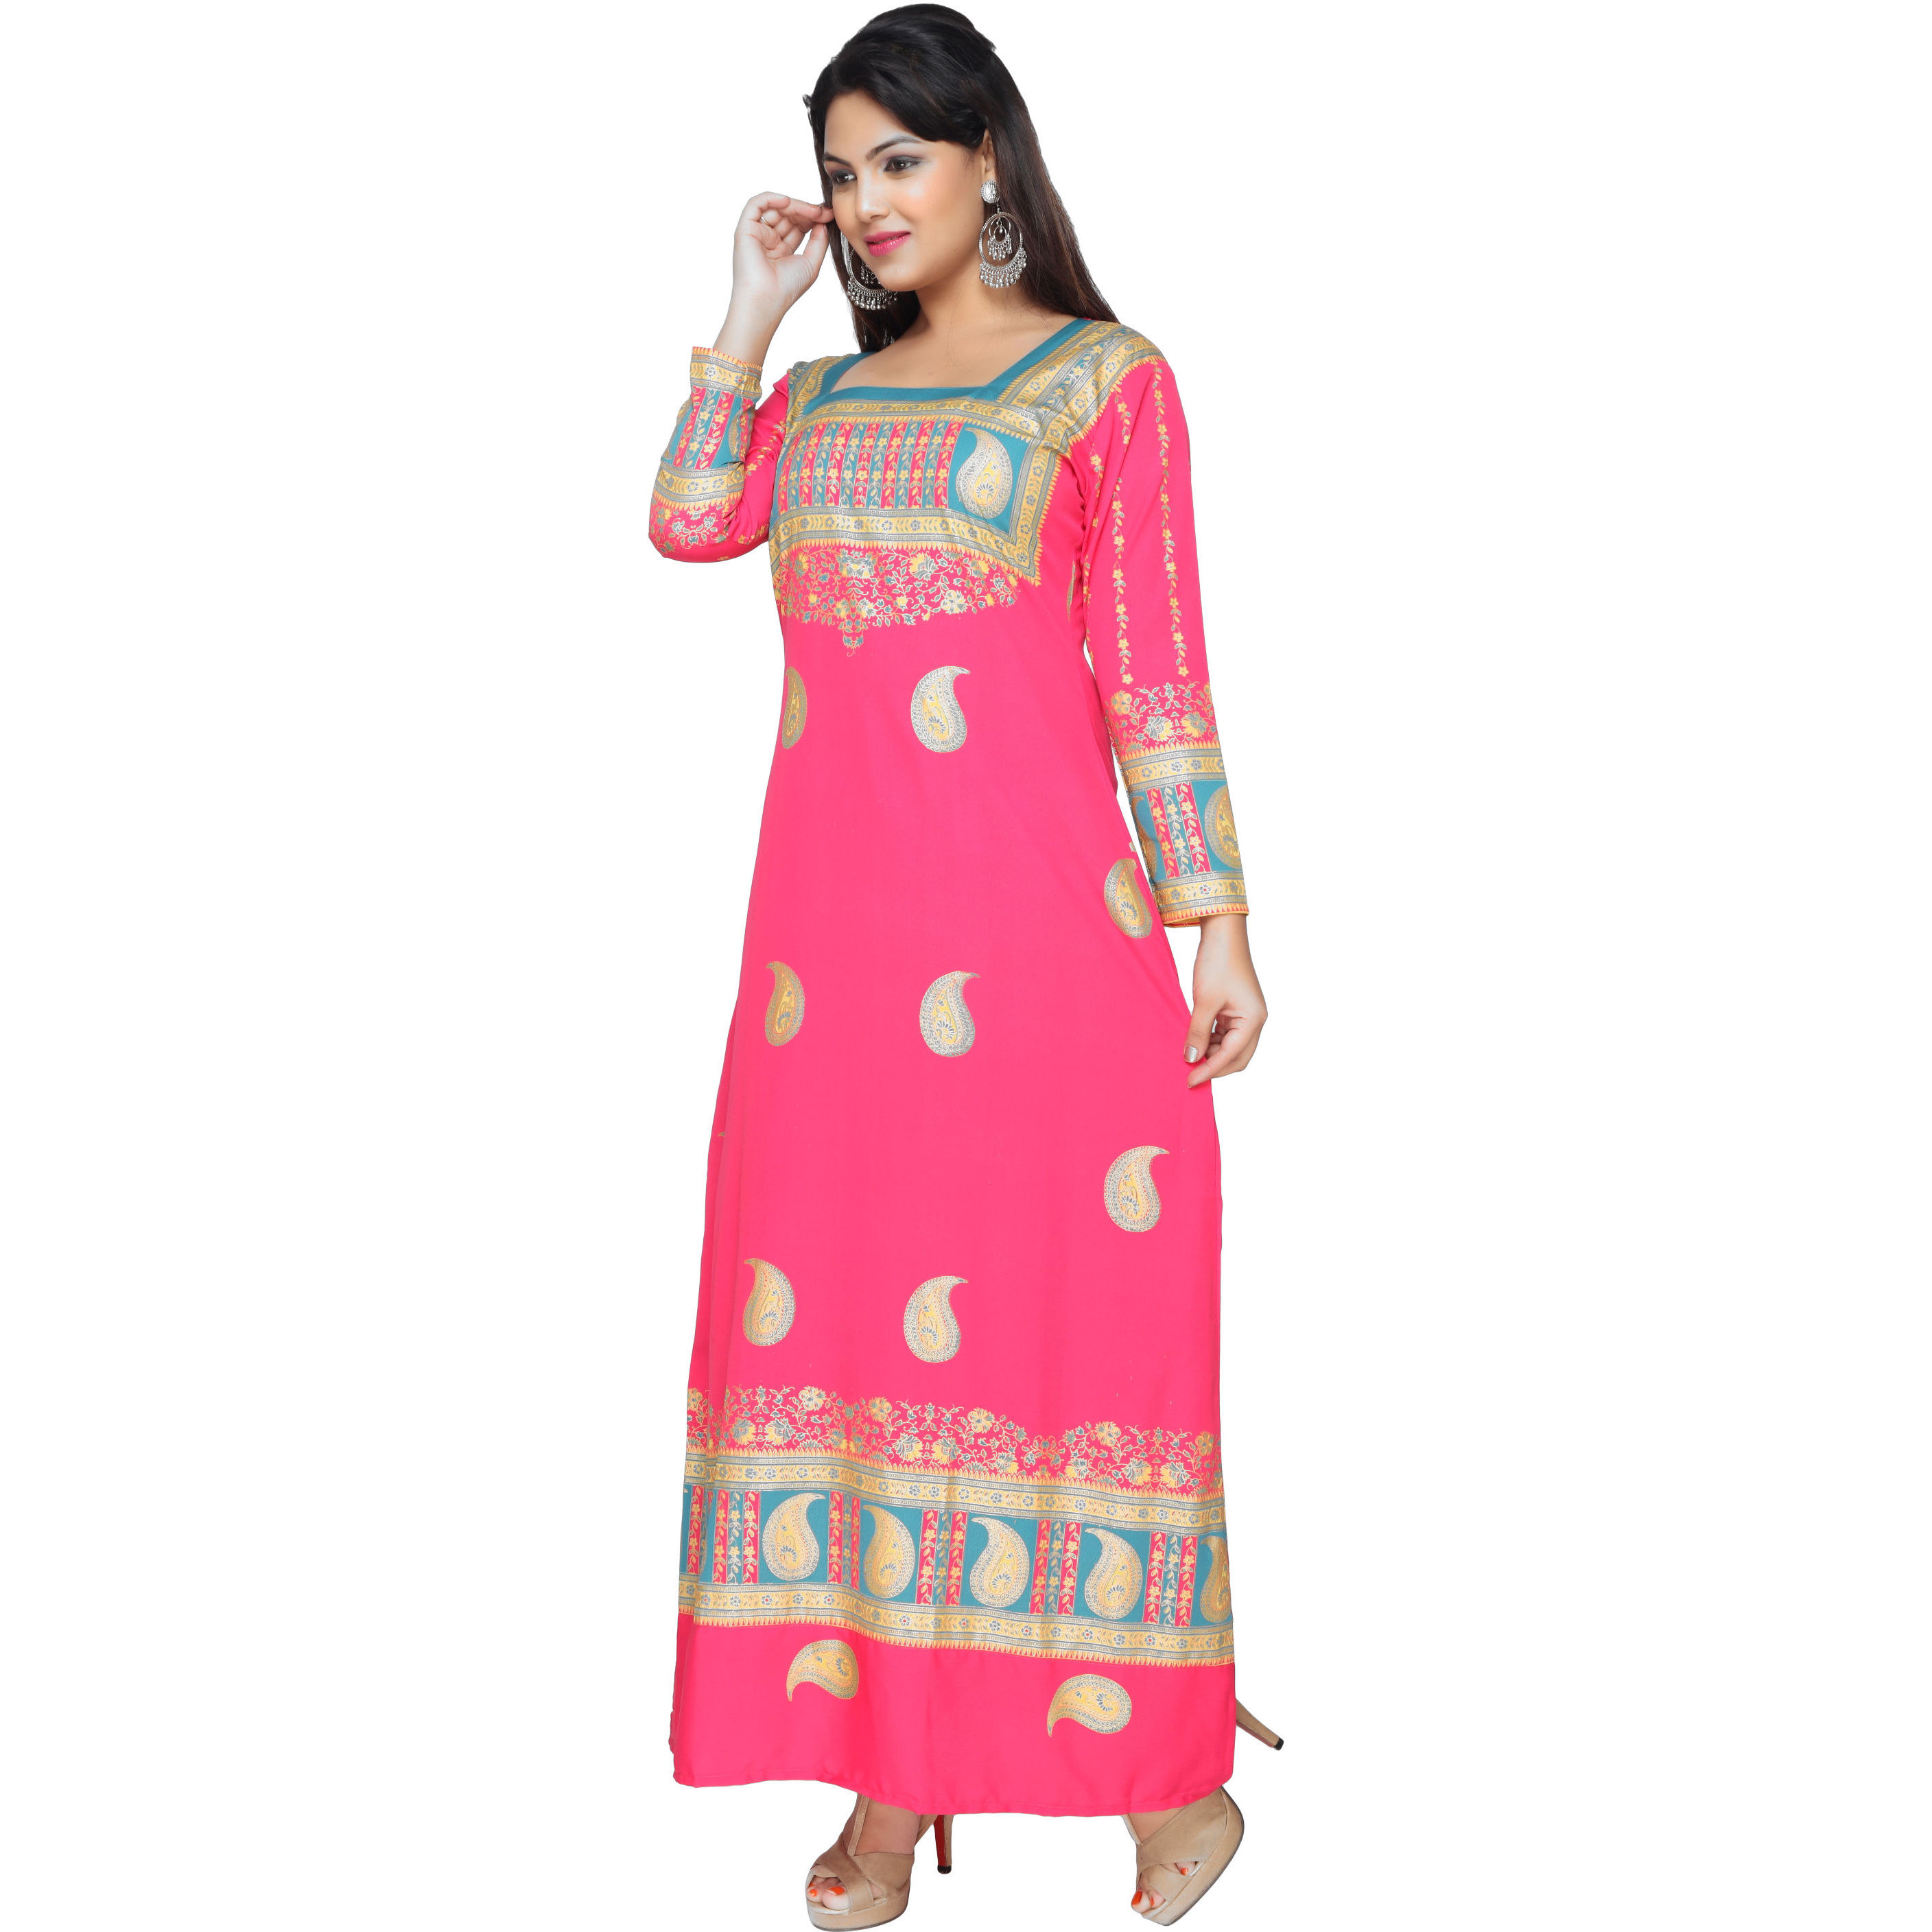 TrendyFashionMall Gold Print Kaftans Maxi Dresses with design in Front and Back (Color:TFMKFT01012-PINK, Size:40 - MEDIUM)